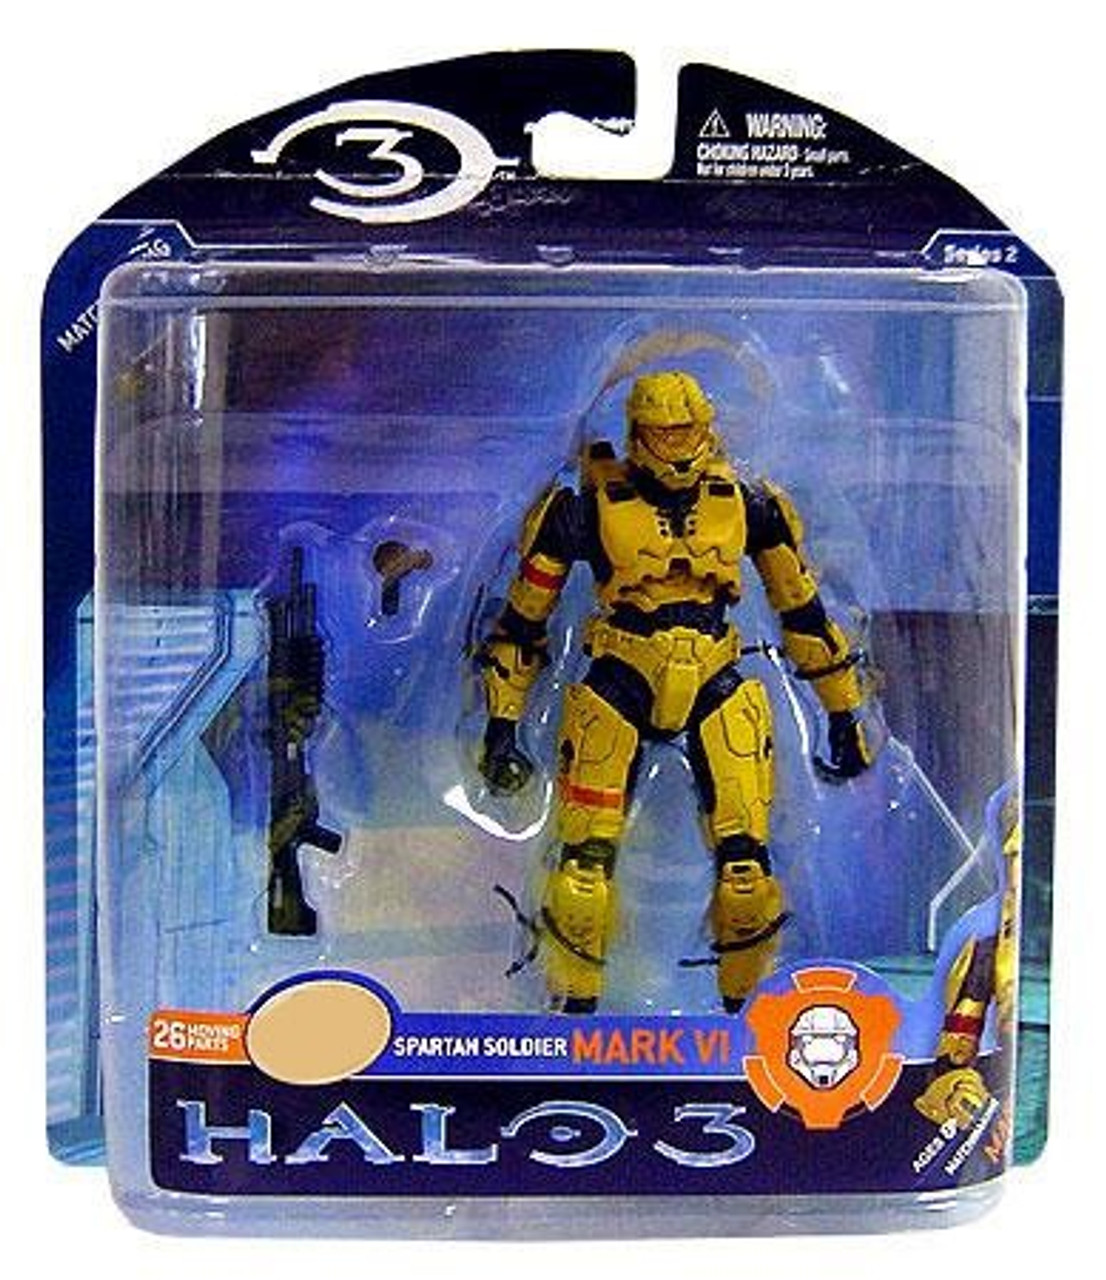 McFarlane Toys Halo 3 Series 2 Spartan Soldier MARK VI Exclusive Action Figure [Yellow]